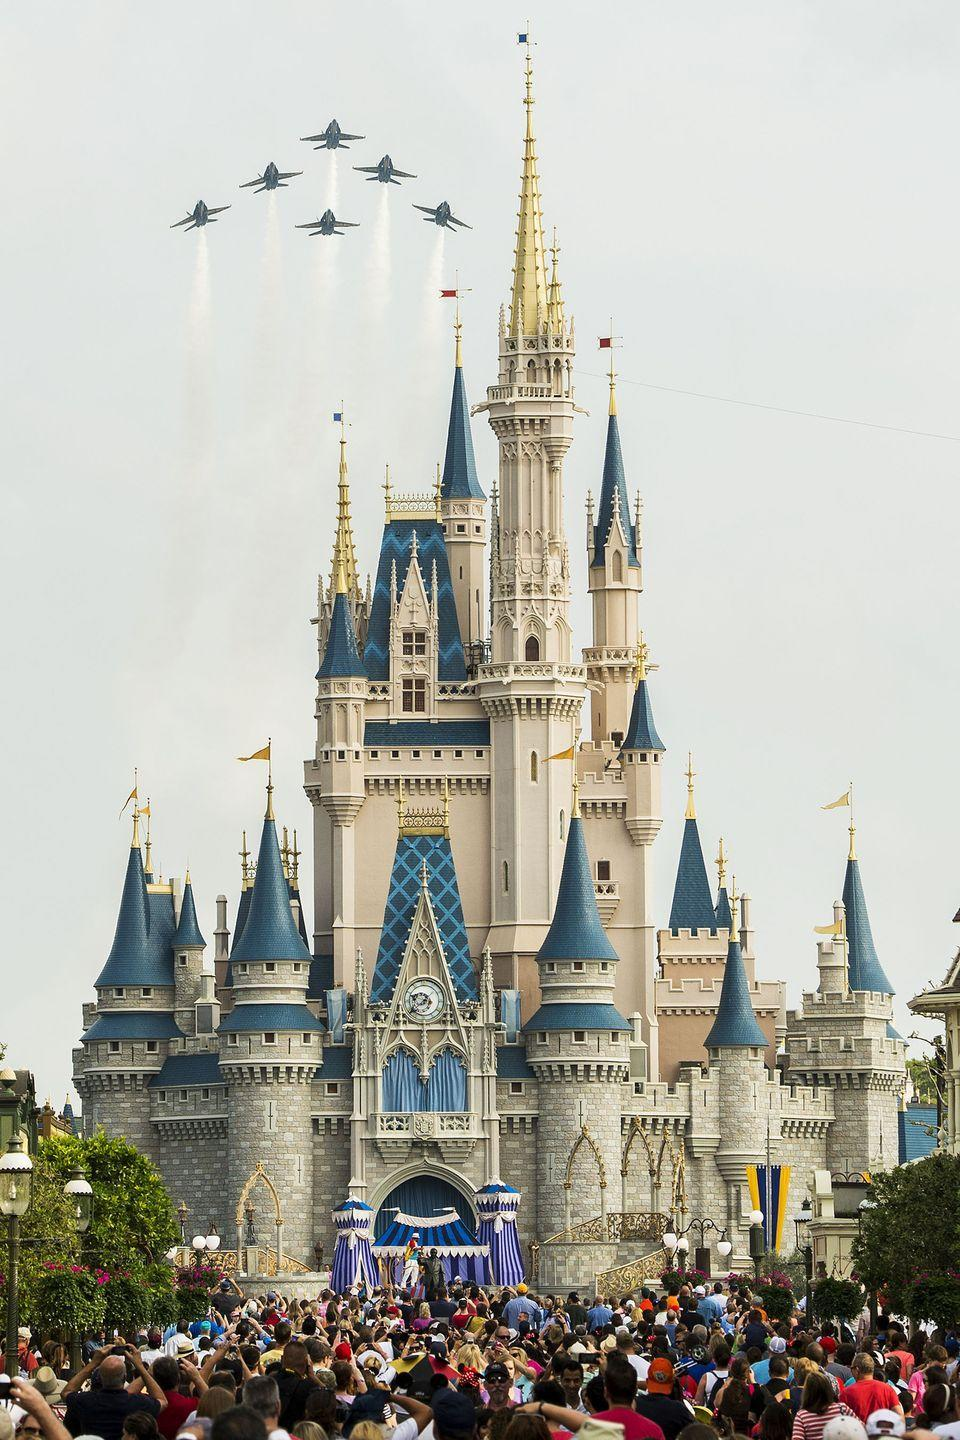 "<p>If you've ever been to Magic Kingdom, do you recall where the castle was located? Some, <a href=""https://www.reddit.com/r/MandelaEffect/comments/3uyecb/disney_world_castle_at_front_of_the_park/"" rel=""nofollow noopener"" target=""_blank"" data-ylk=""slk:even one Orlando local on Reddit"" class=""link rapid-noclick-resp"">even one Orlando local on Reddit</a>, clearly remember it being the entrance to the park. </p>"